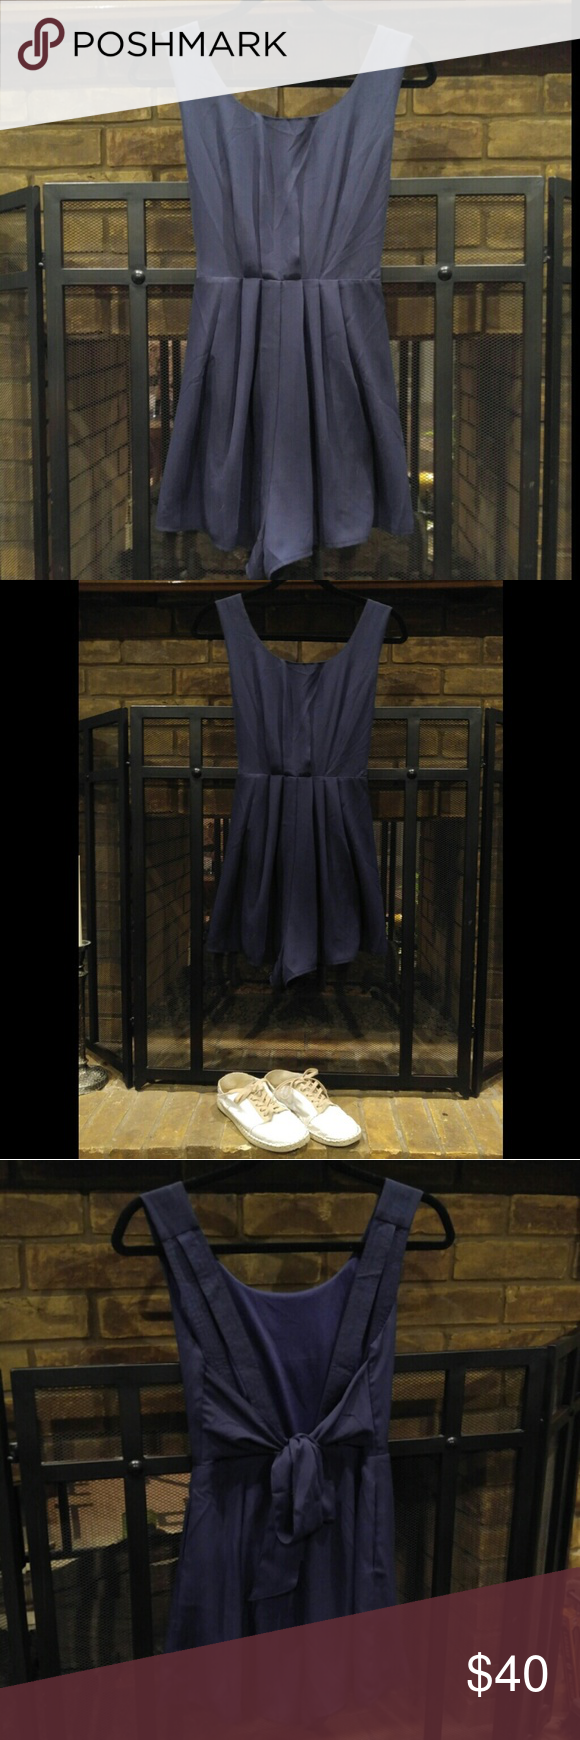 Pleated Navy Romper Nwot Rodeo Boutique Dresses And Bundling 1 M